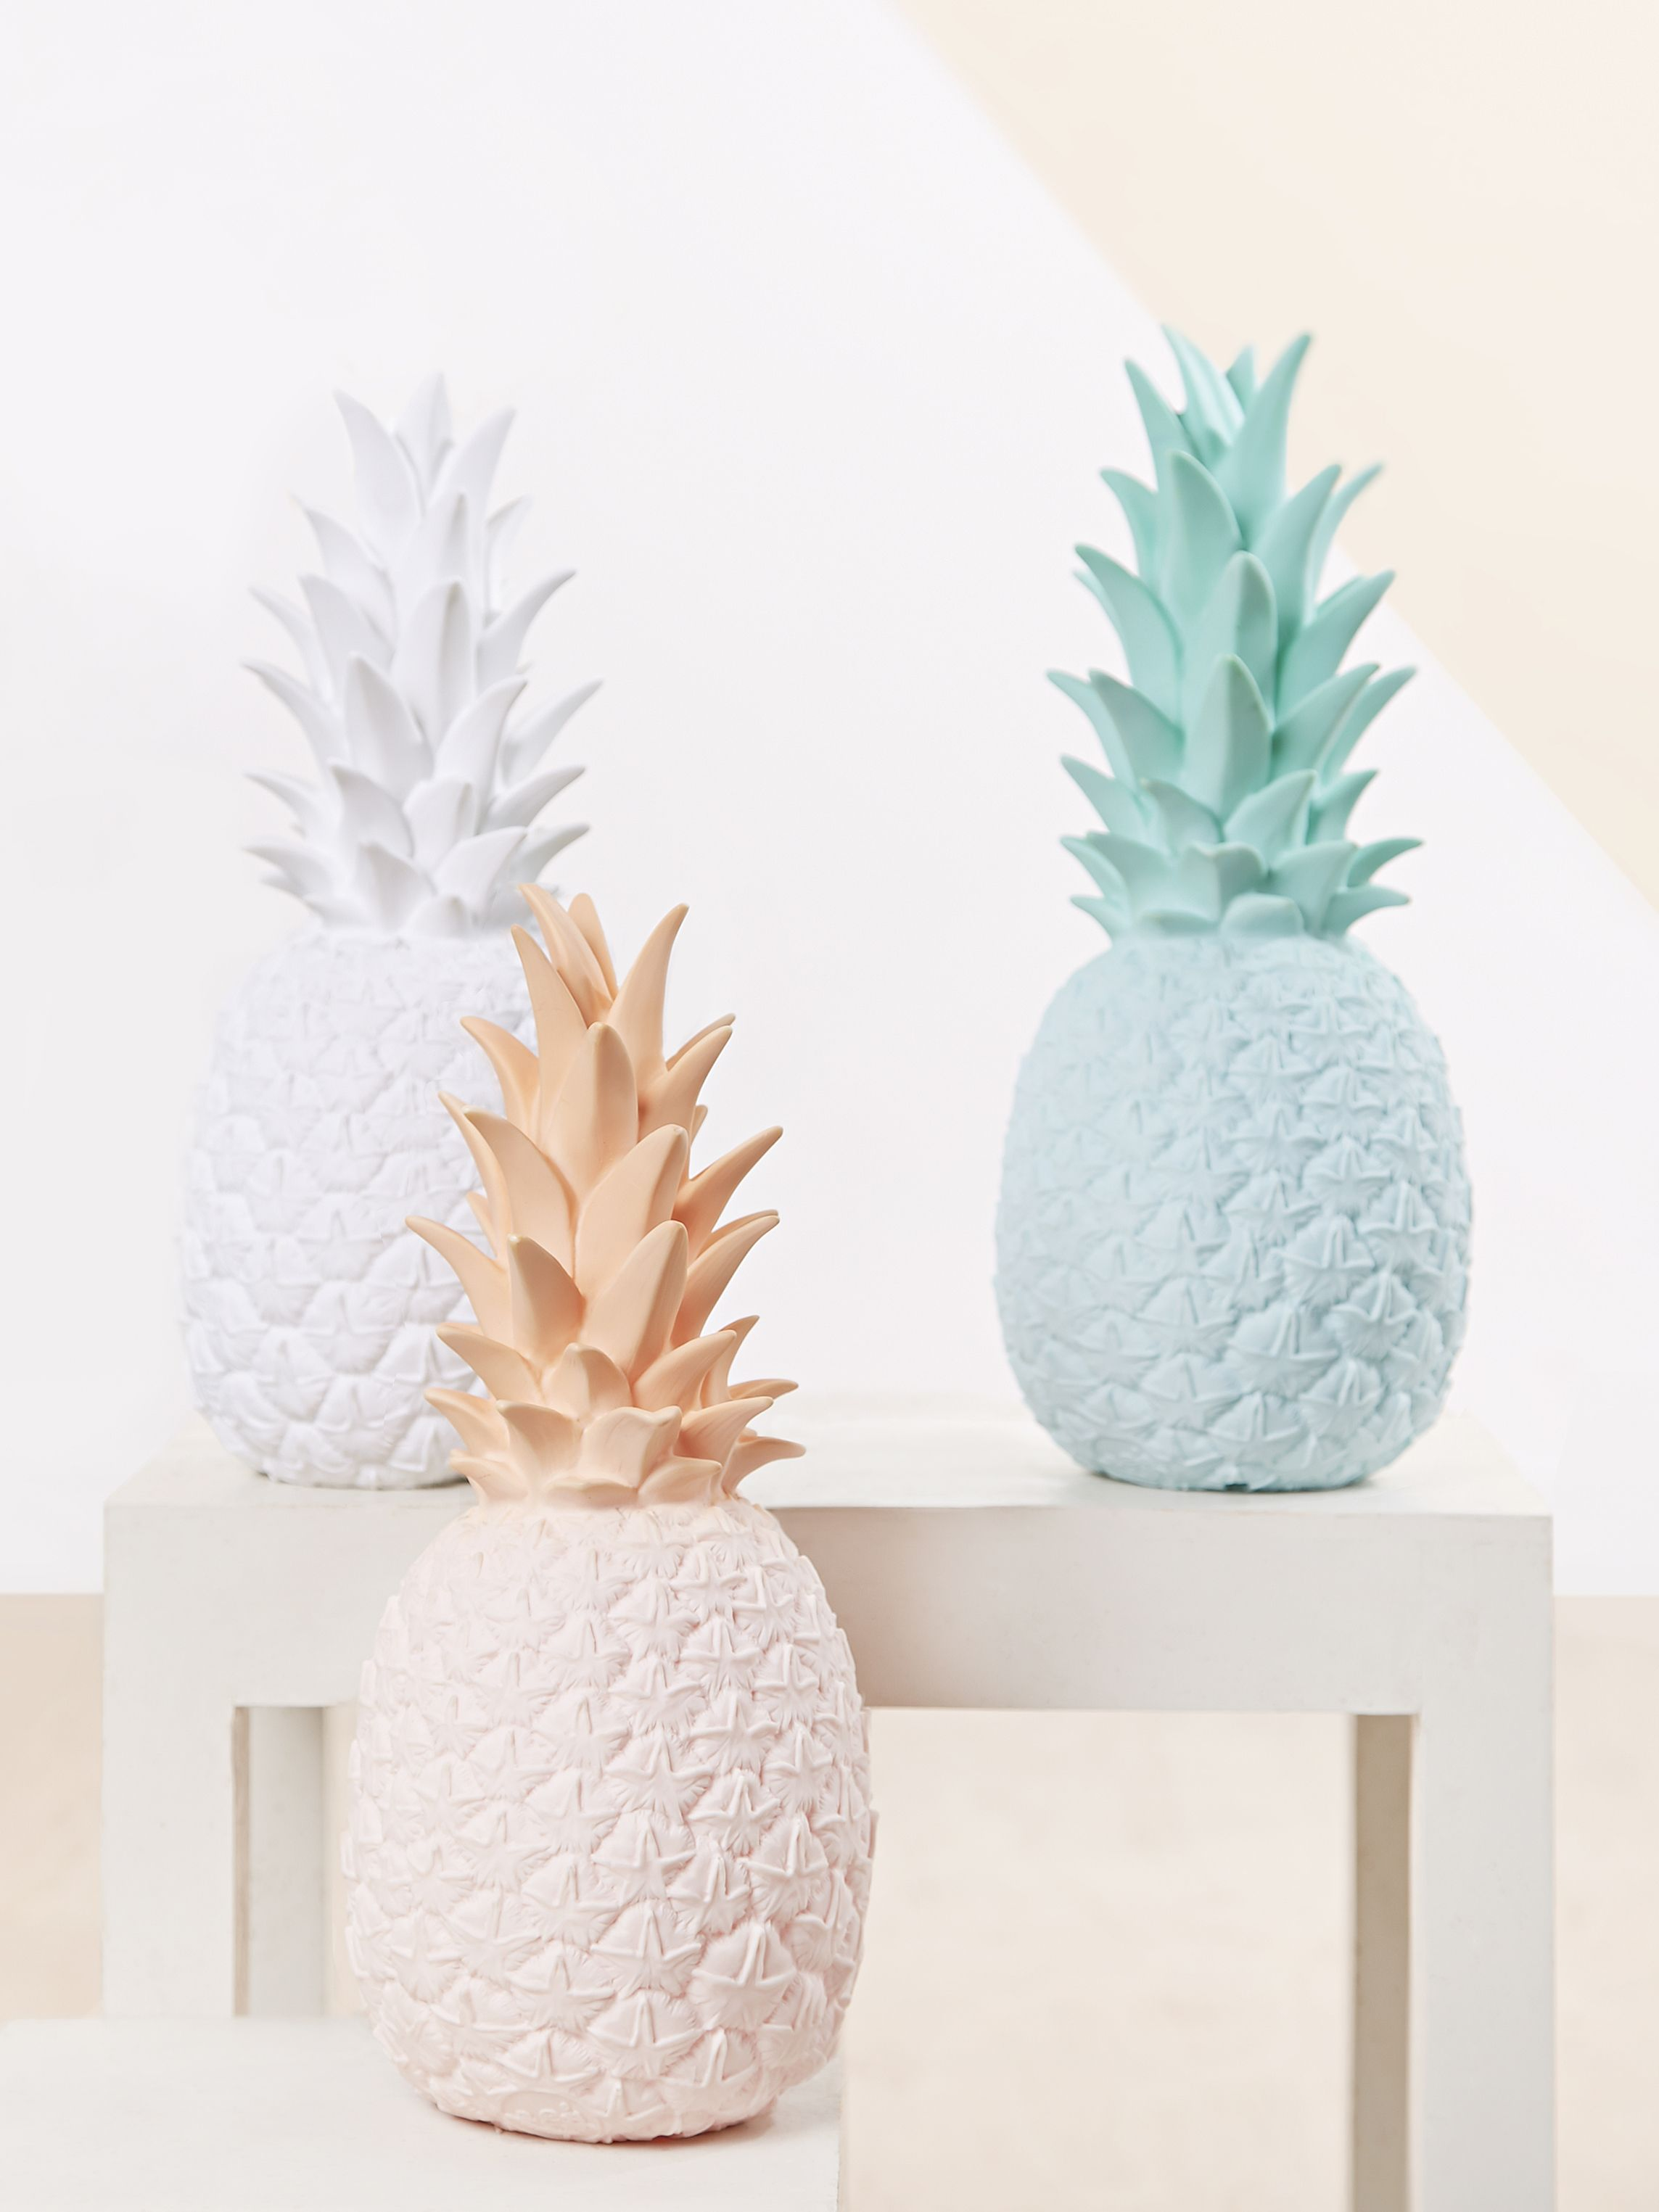 Lampes d co en forme d 39 ananas couleur pastel id es for Lampe deco interieur